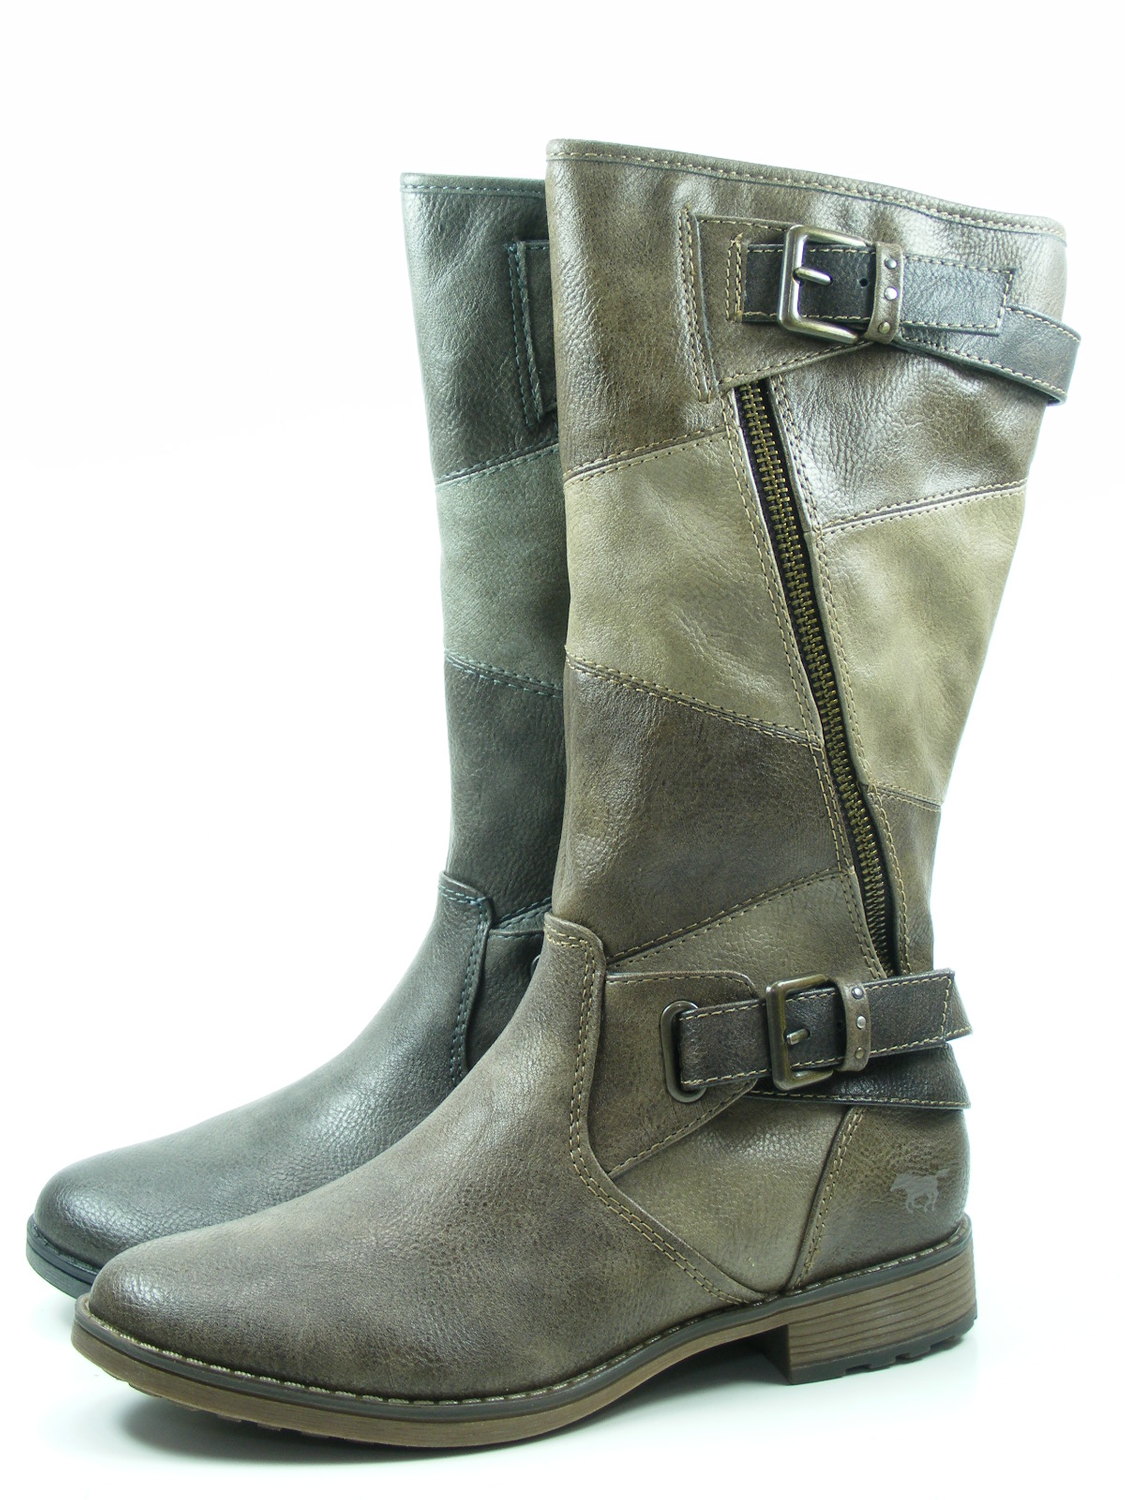 Mustang 1265-507 Chaussures Femmes Bottines Bottes